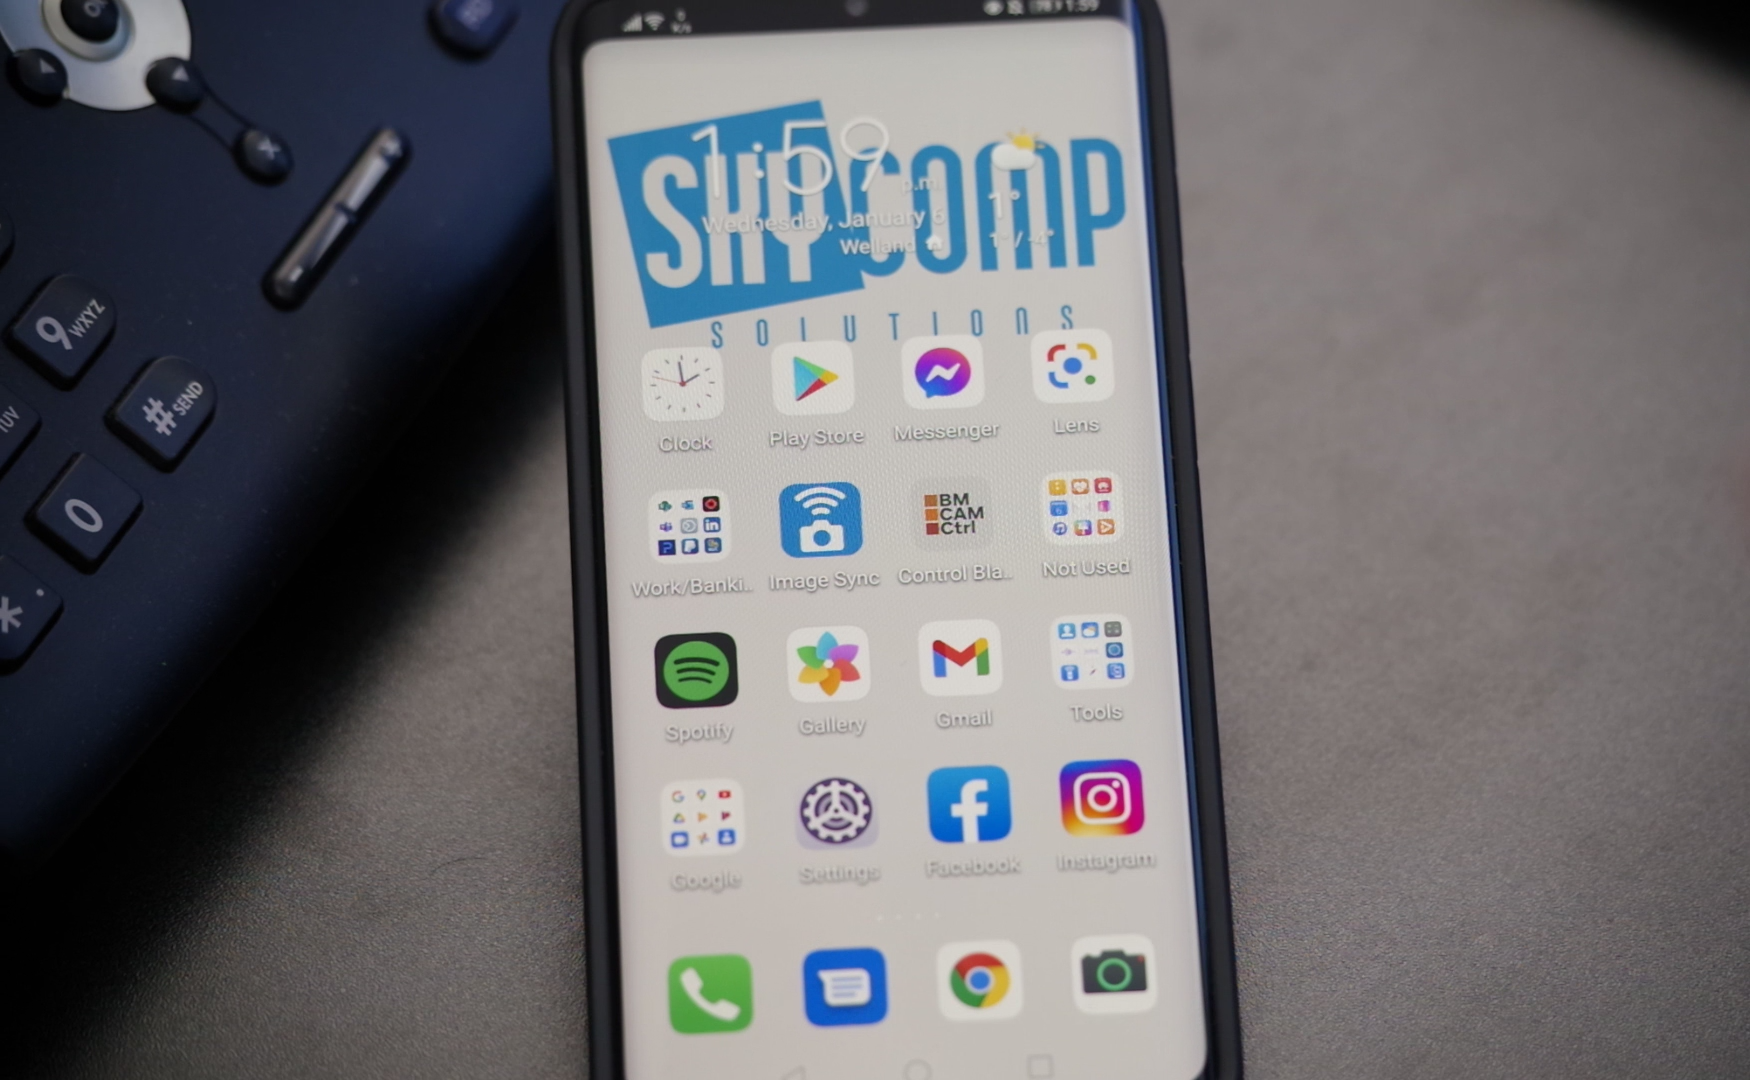 Skycomp Phone with google play store